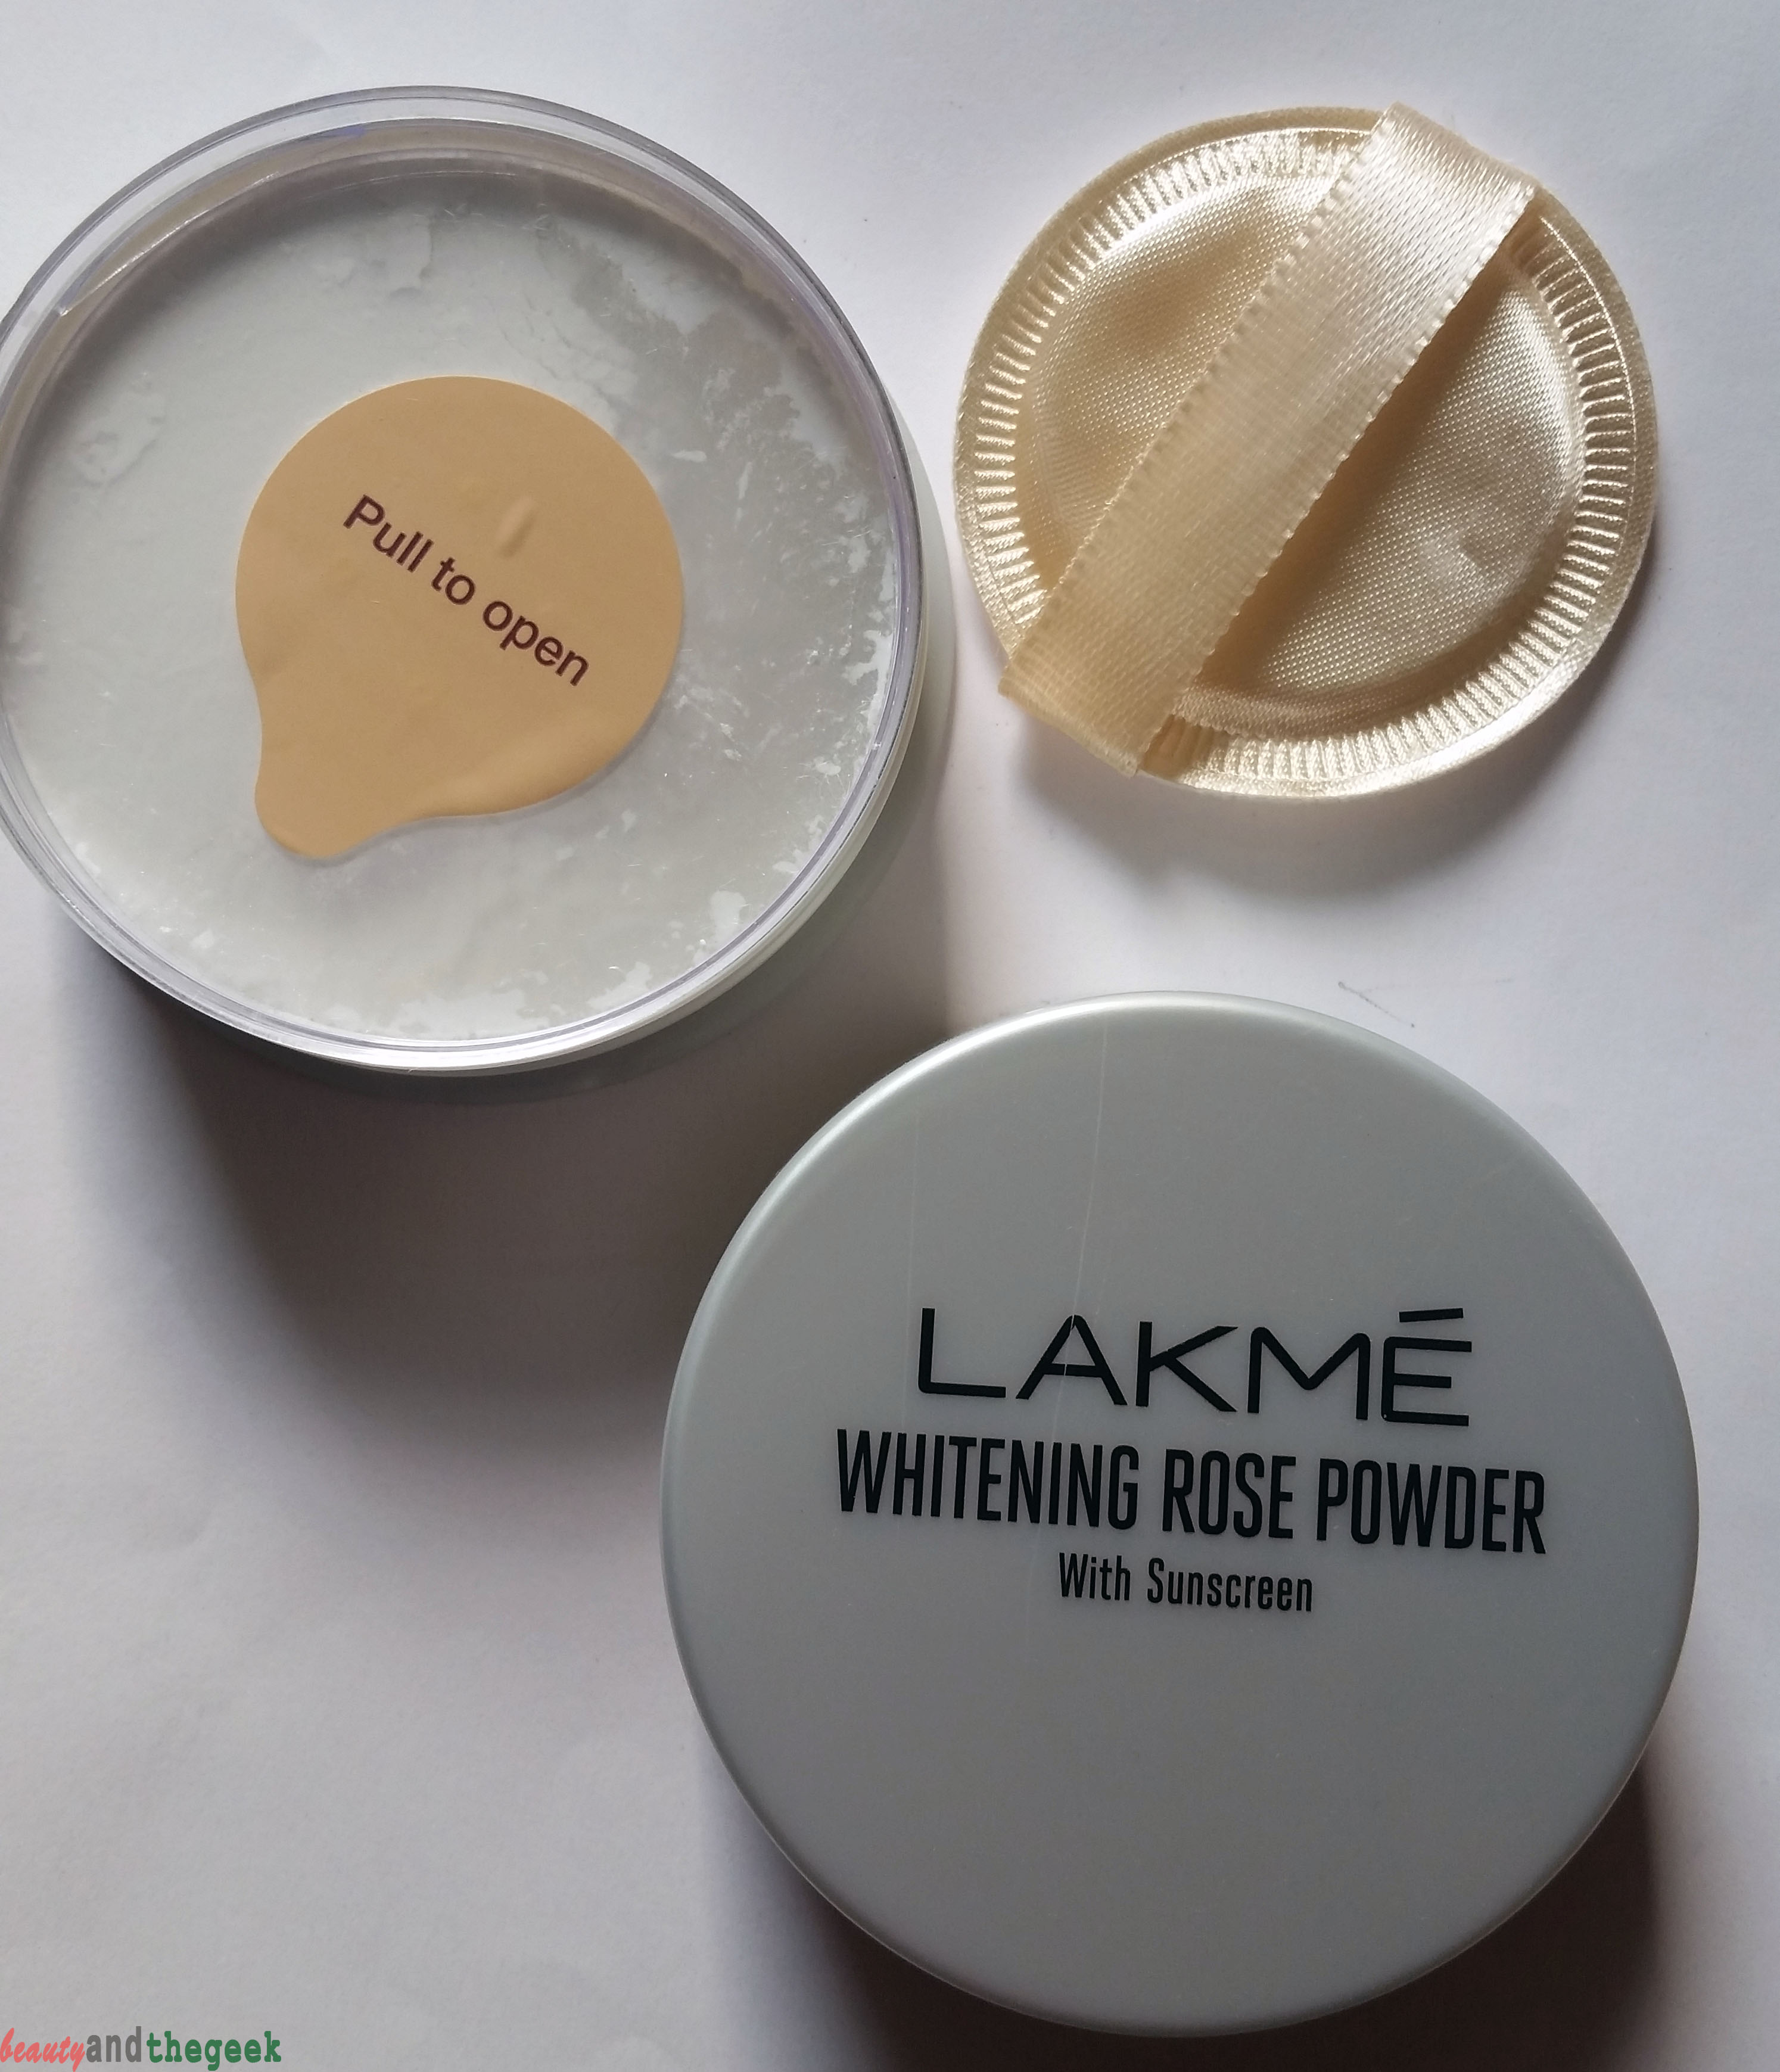 LAKME Whitening Rose Powder with Sunscreen review